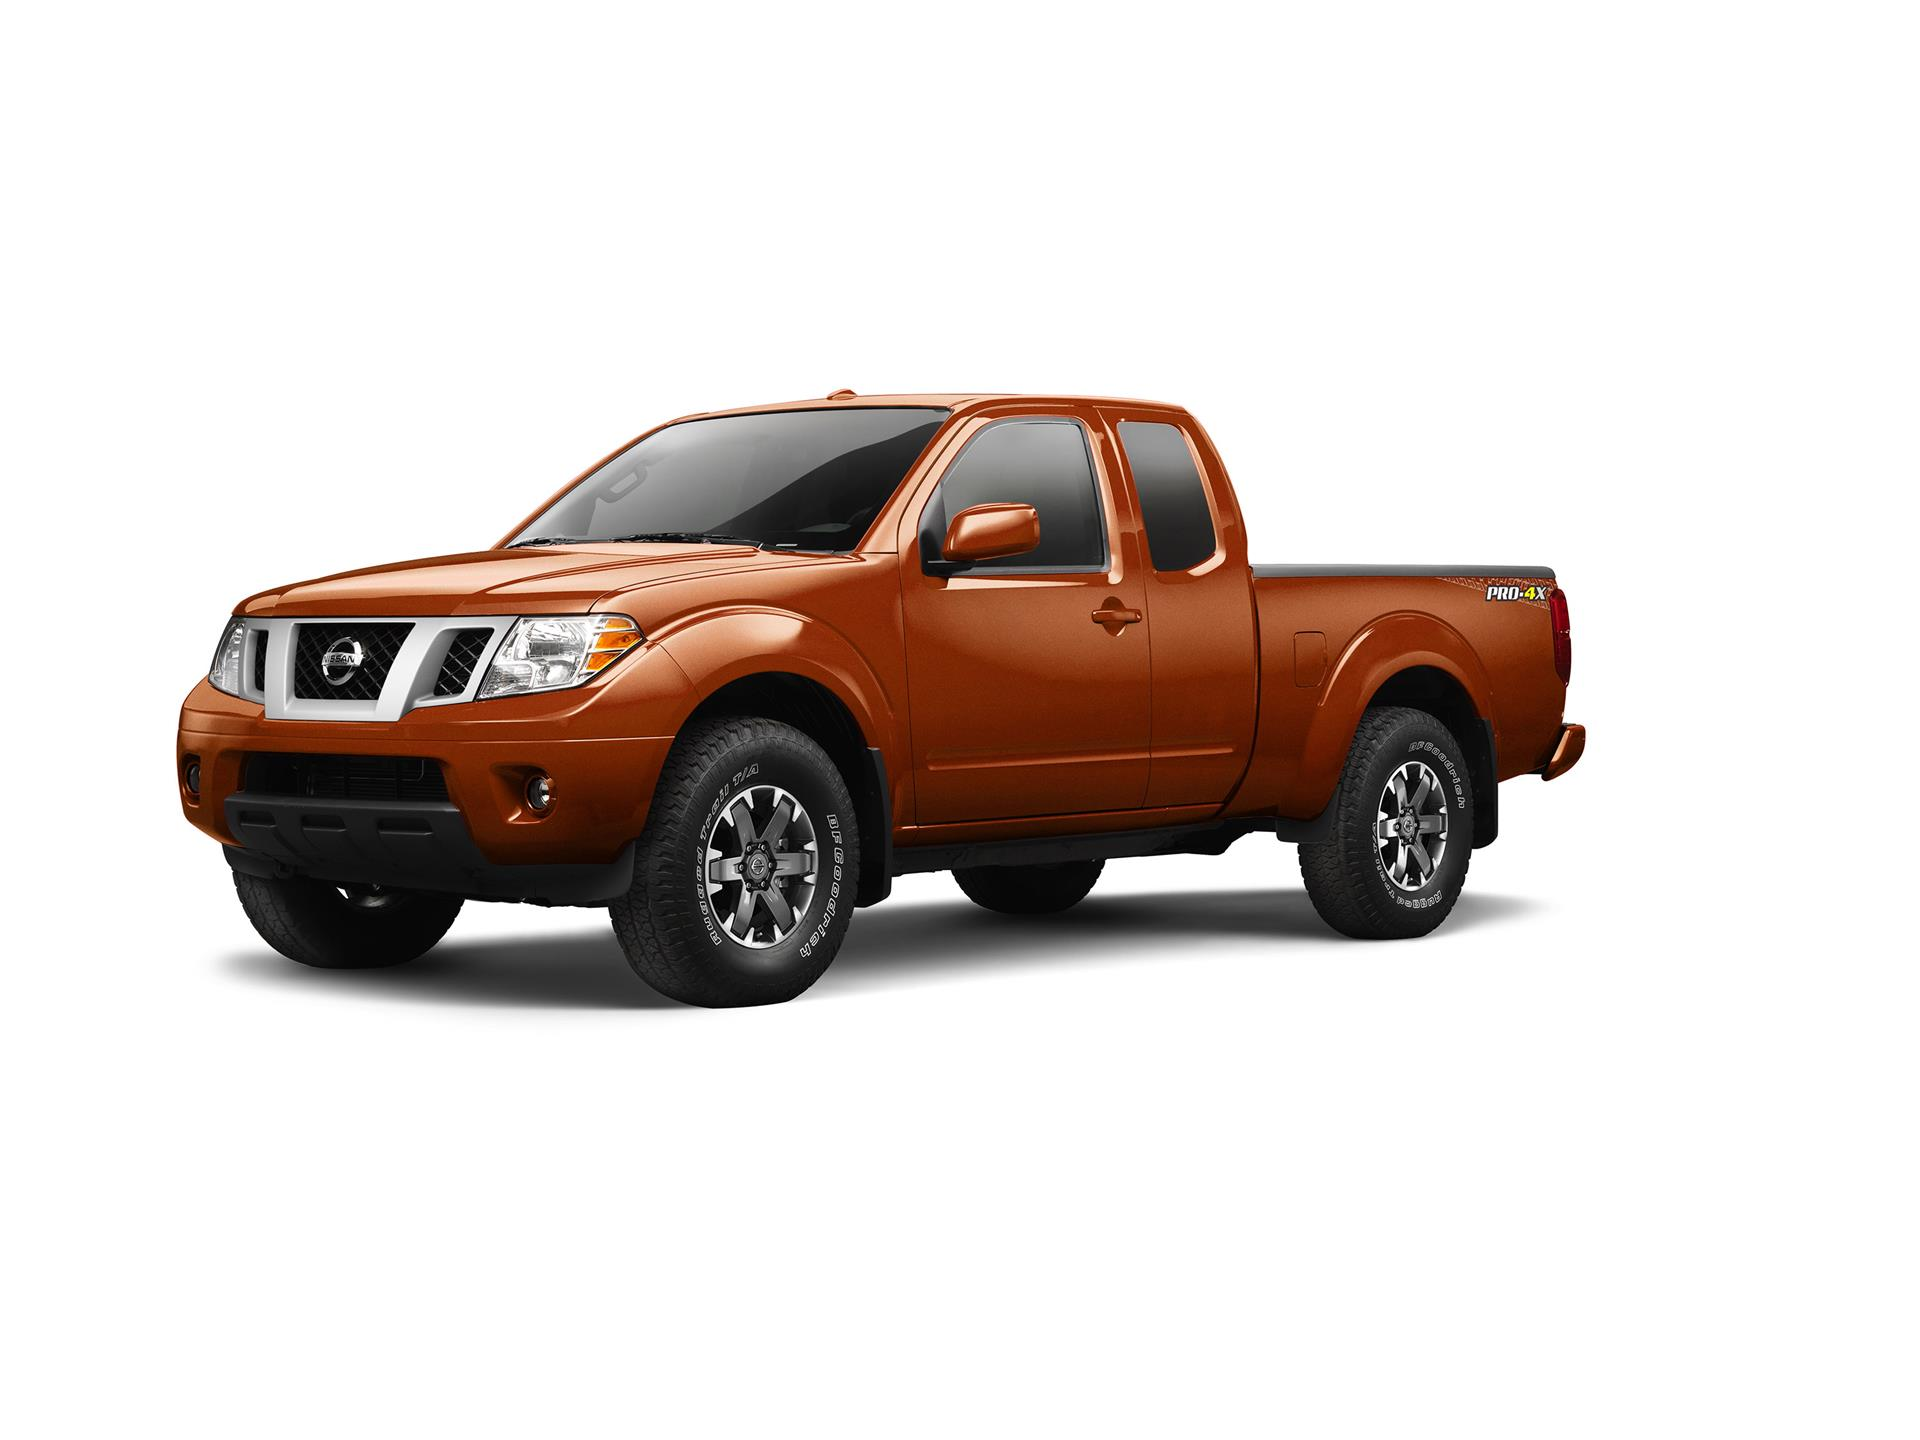 2016 nissan frontier. Black Bedroom Furniture Sets. Home Design Ideas